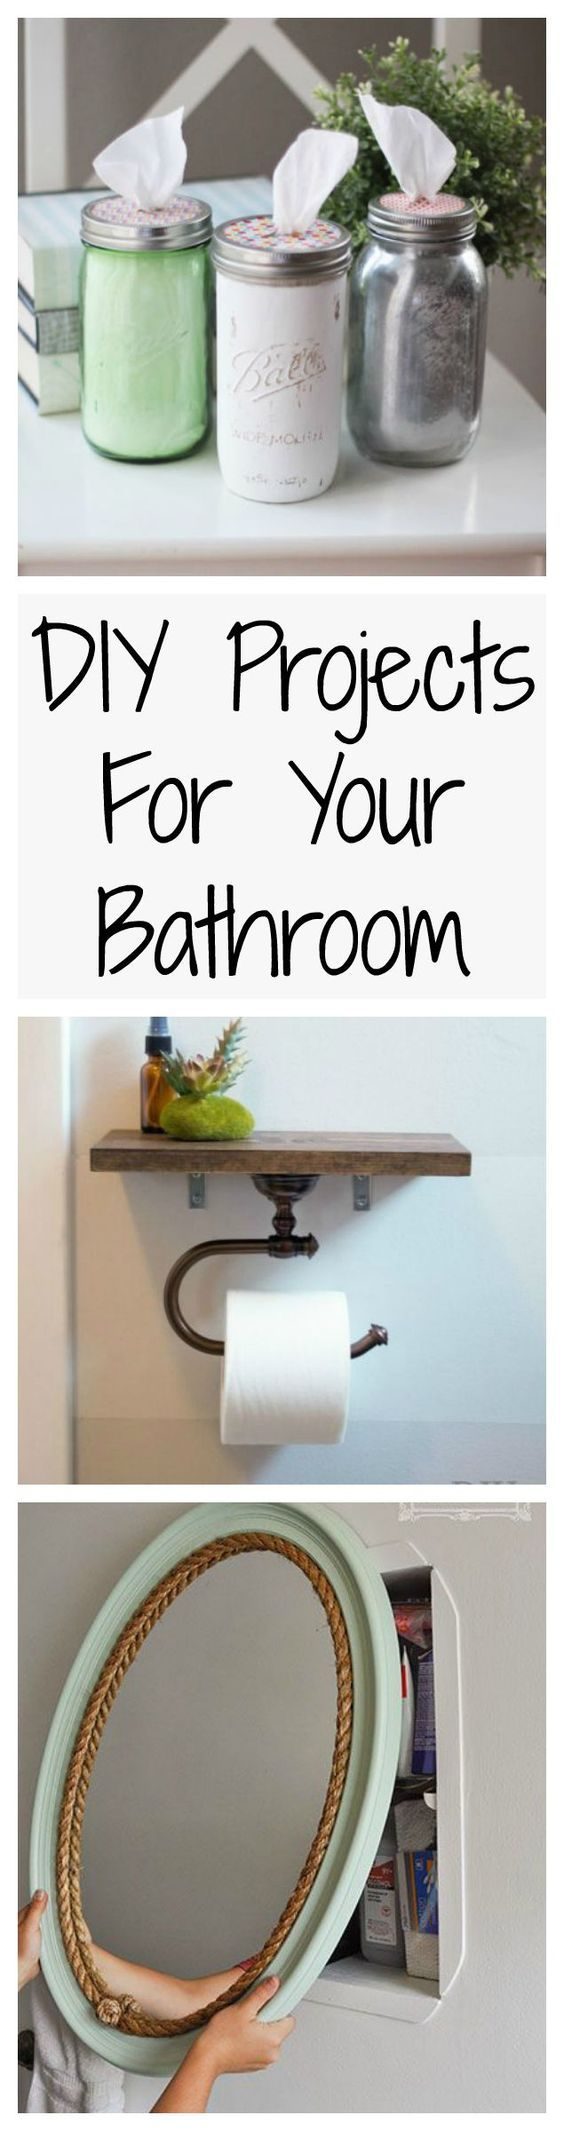 Best 98 DIY Home Decor images on Pinterest | Good ideas, Home ideas ...